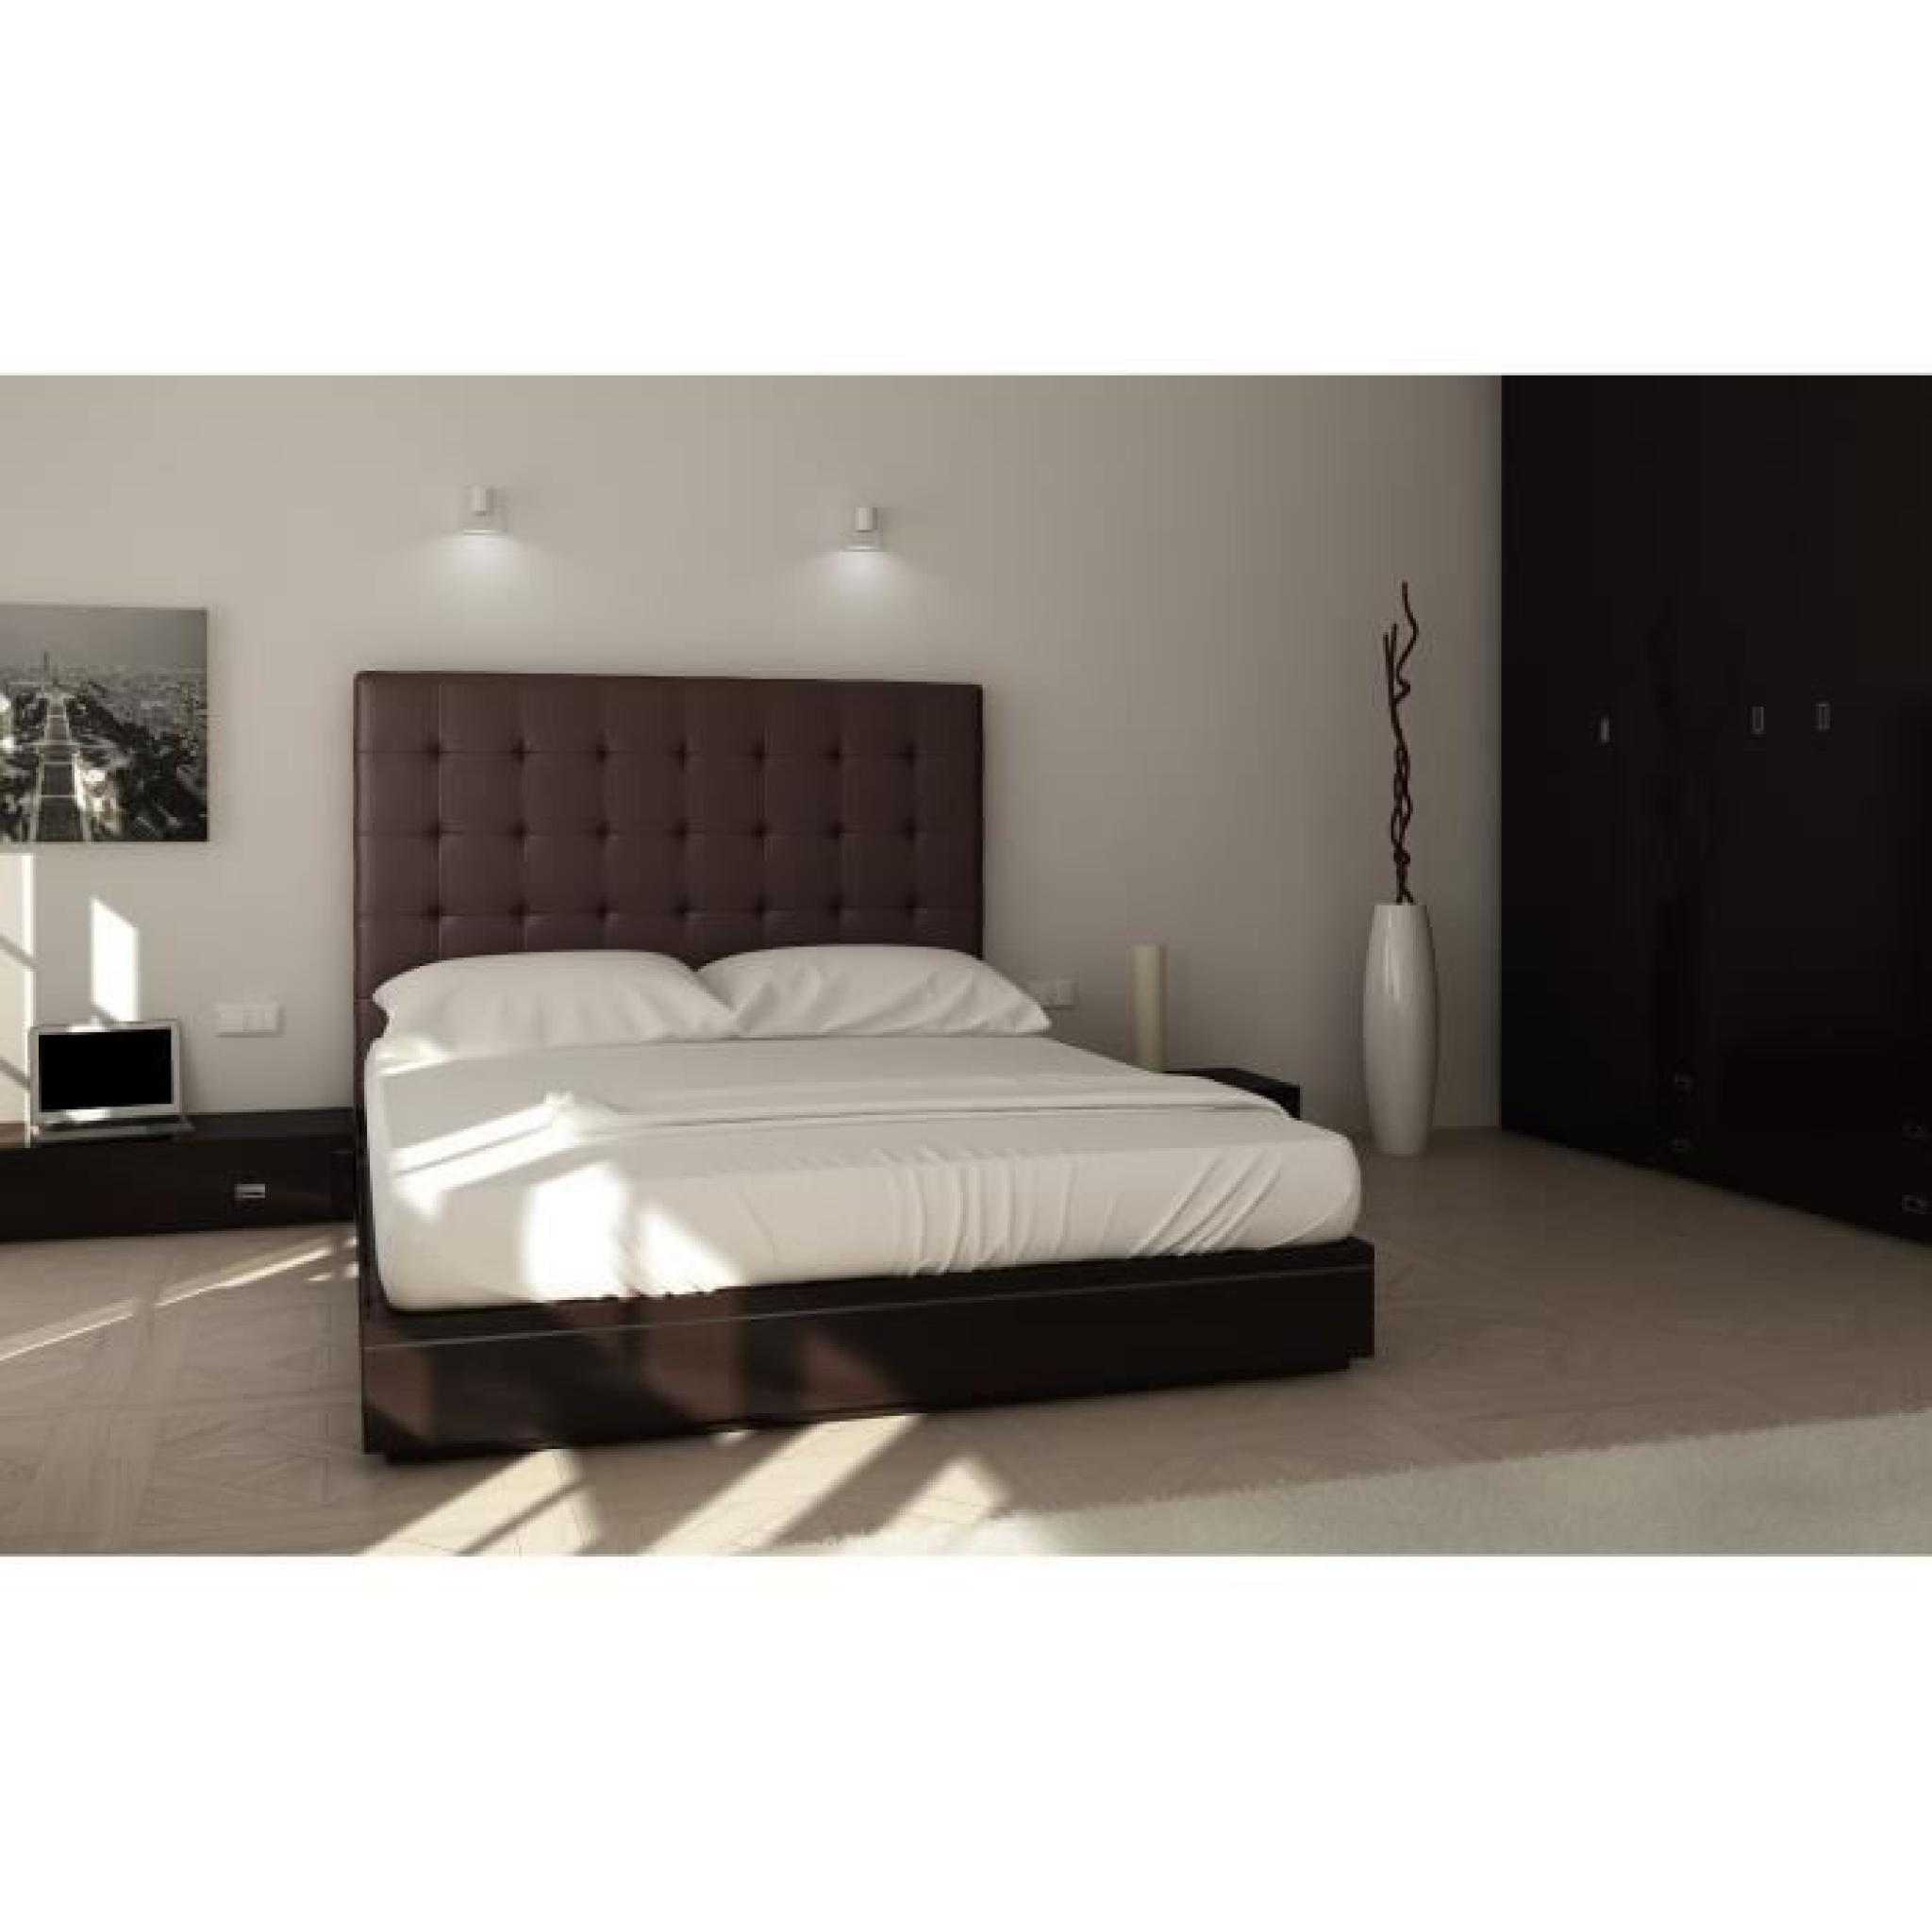 sogno t te de lit capitonn e 180 cm pu marron achat vente tete de lit pas cher couleur et. Black Bedroom Furniture Sets. Home Design Ideas